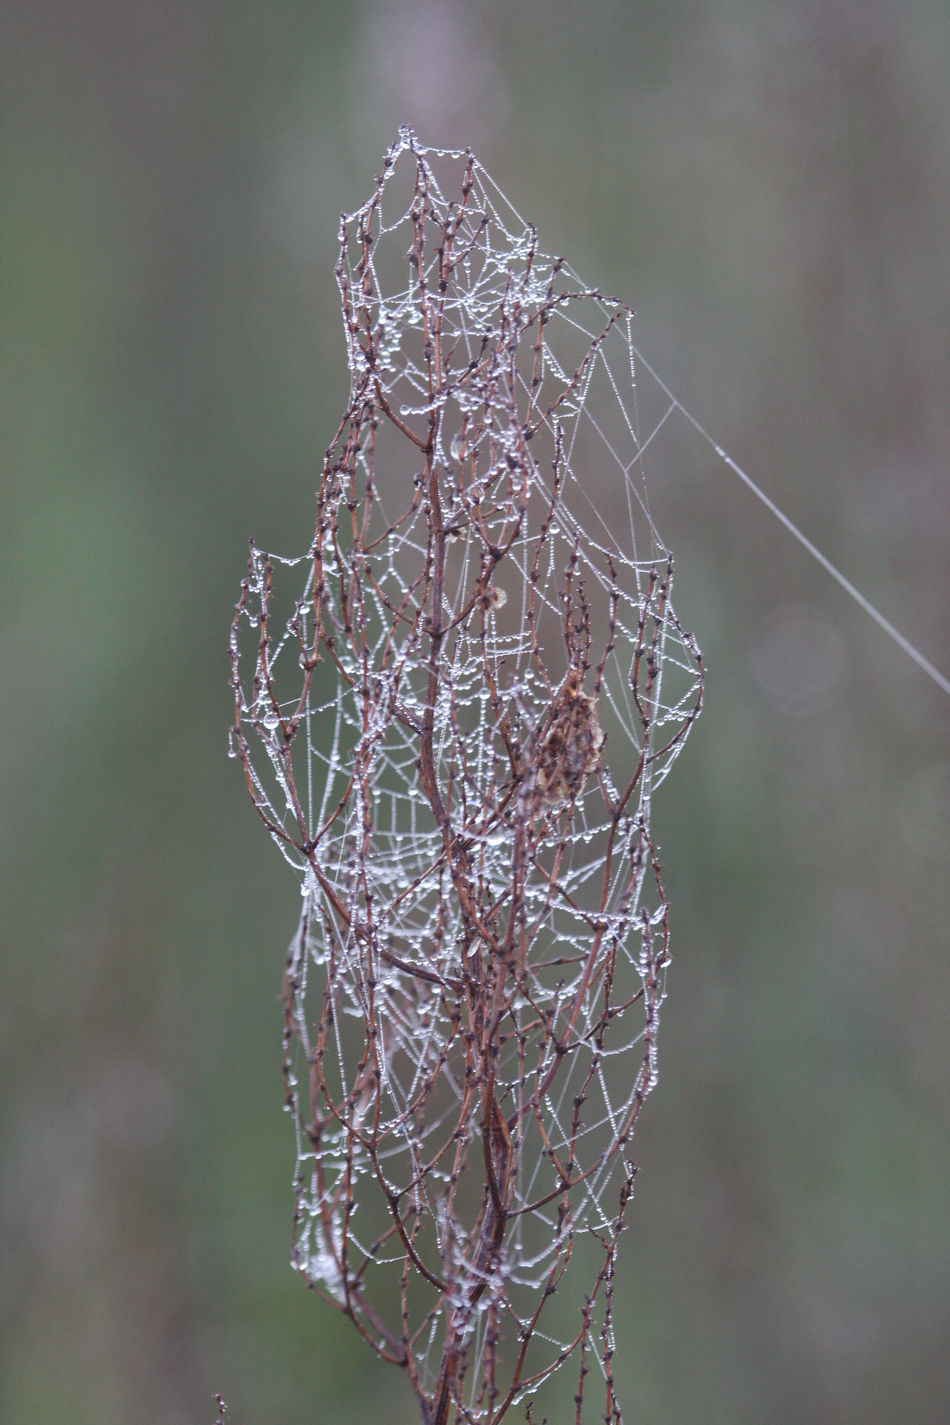 Animal Themes Beauty In Nature Close-up Complexity Deadly Drop Focus On Foreground Fragility Nature NO FLY ZONE Outdoors Spider Spider Web Trap Web